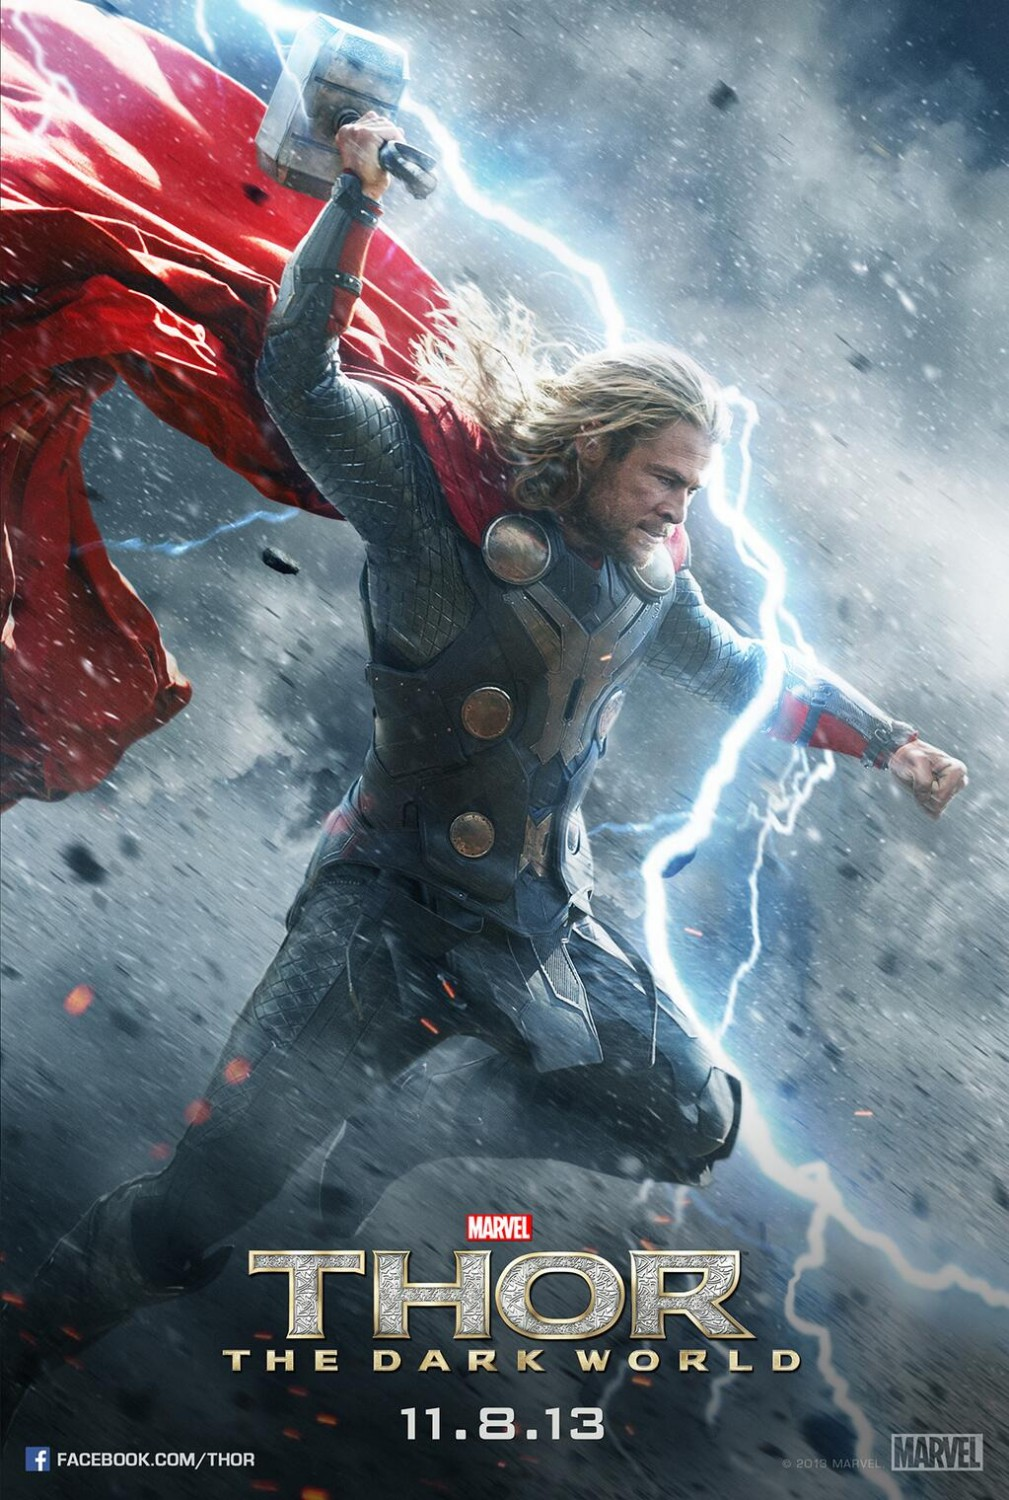 Thor The Dark World - Poster - 003